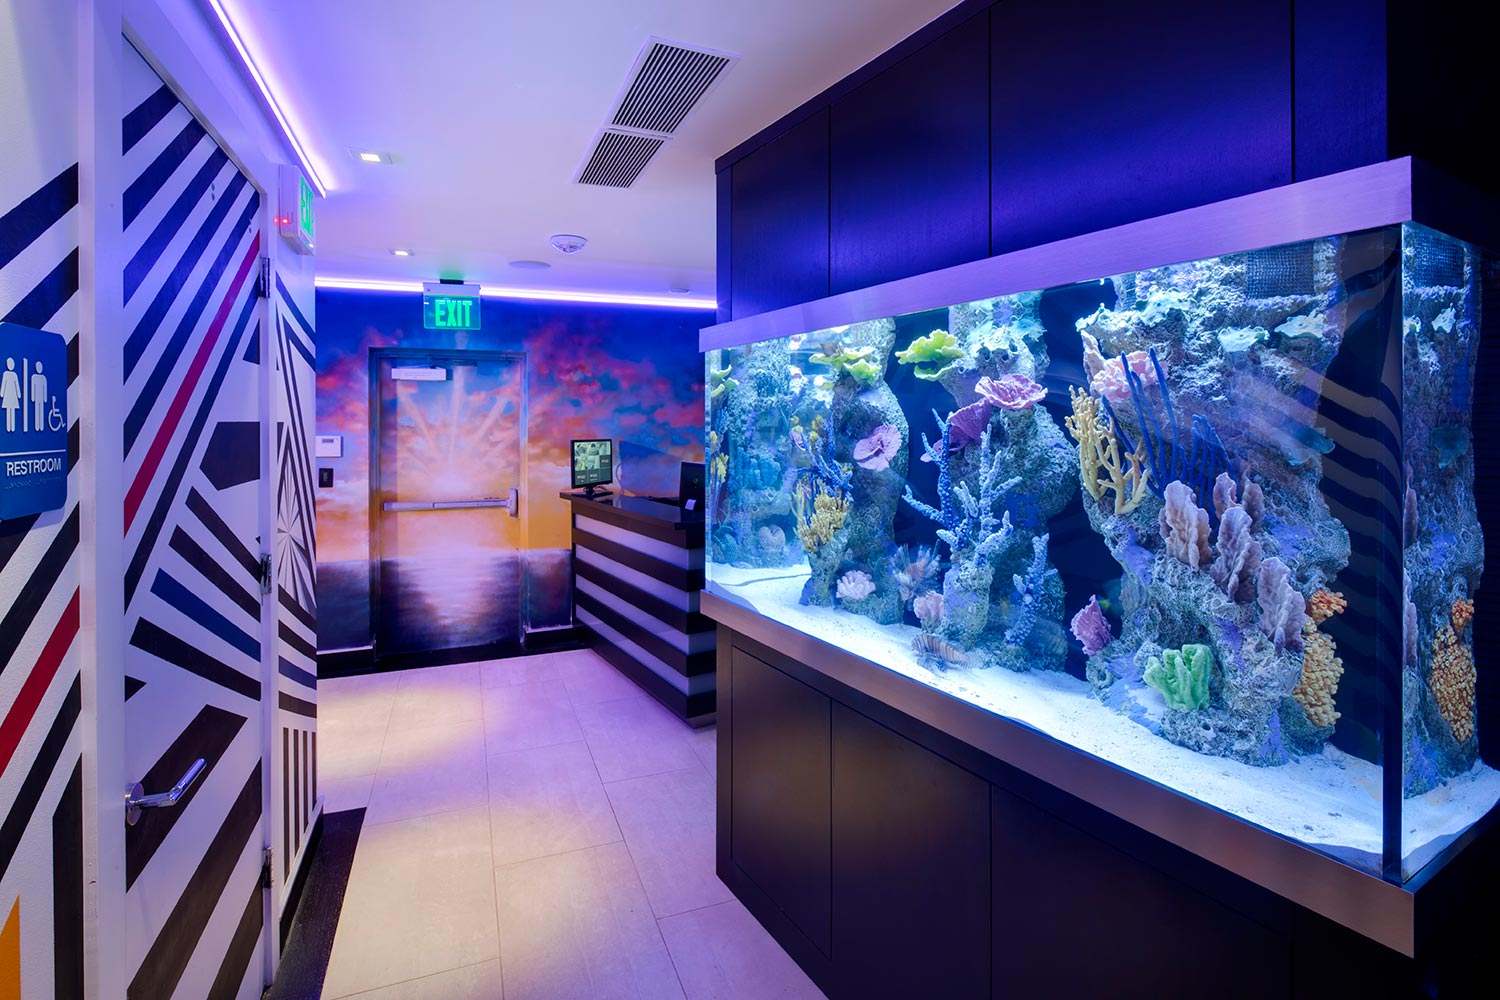 Two of the contemporary music scene's most prolific hit producers and mixing engineer, Nate 'Danja' Hills and Marcella Araica have added a cutting edge, WSDG recording studio to their N.A.R.S. (New Age Rock Stars) label. Studio entrance w fish tank.